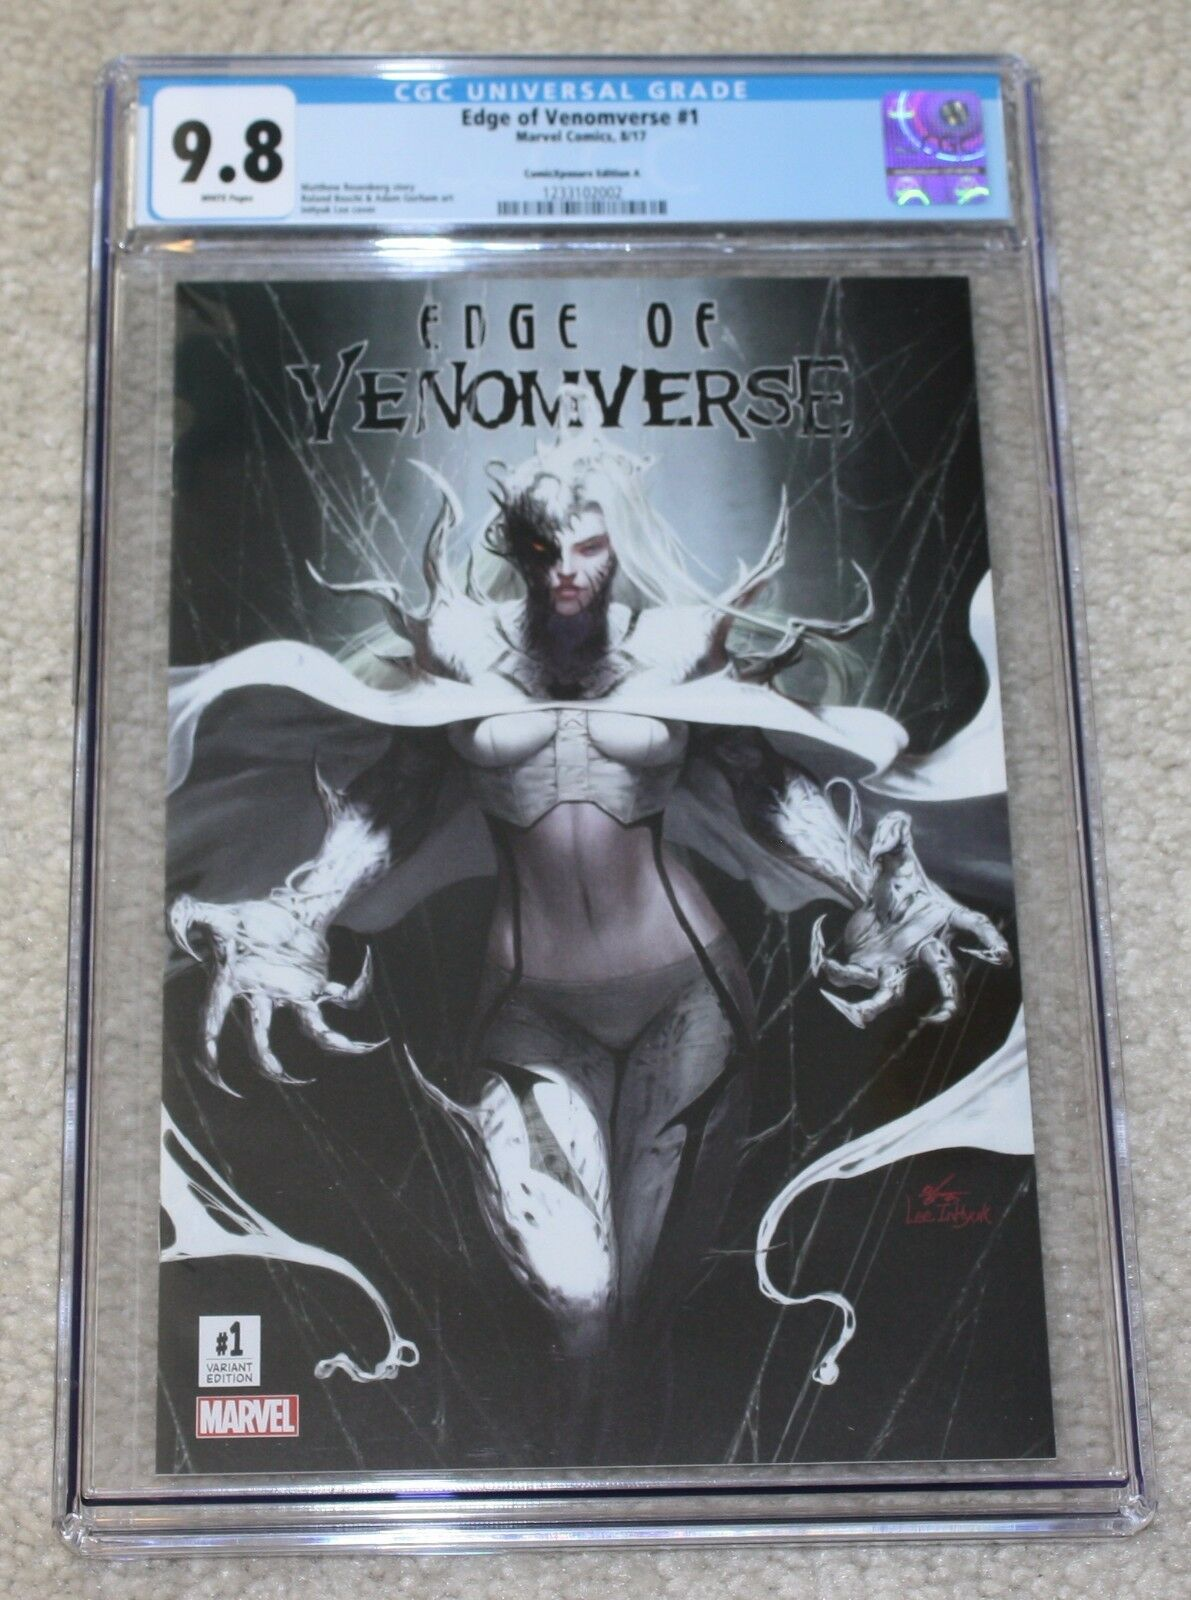 EDGE OF VENOMVERSE #1 CGC 9.8 INHYUK LEE WHITE QUEEN HALF VENOM VARIANT A